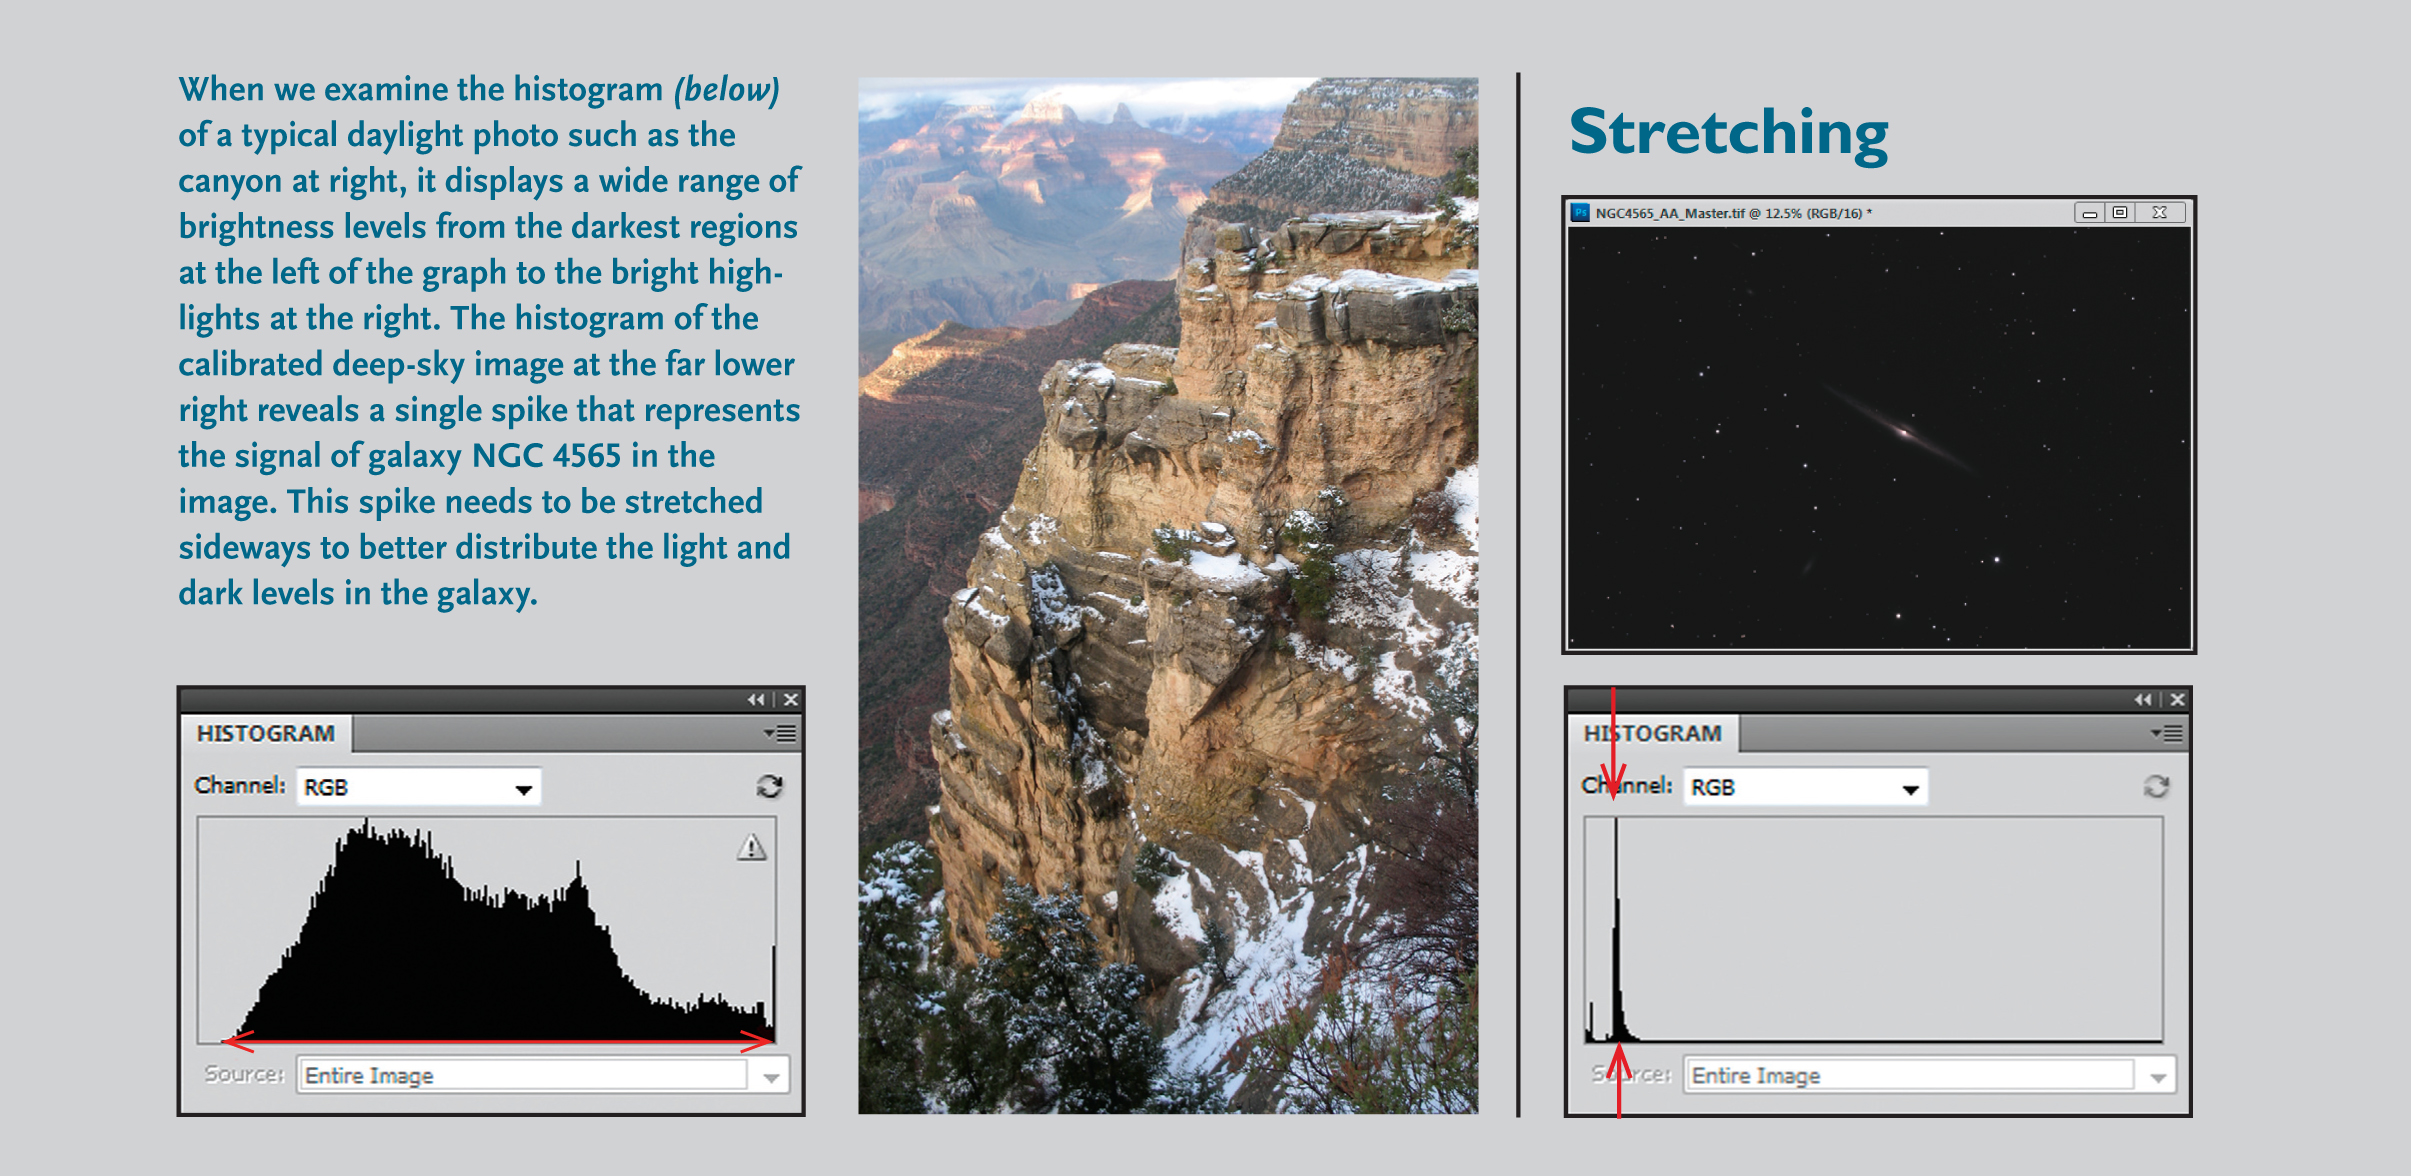 Stretching Images